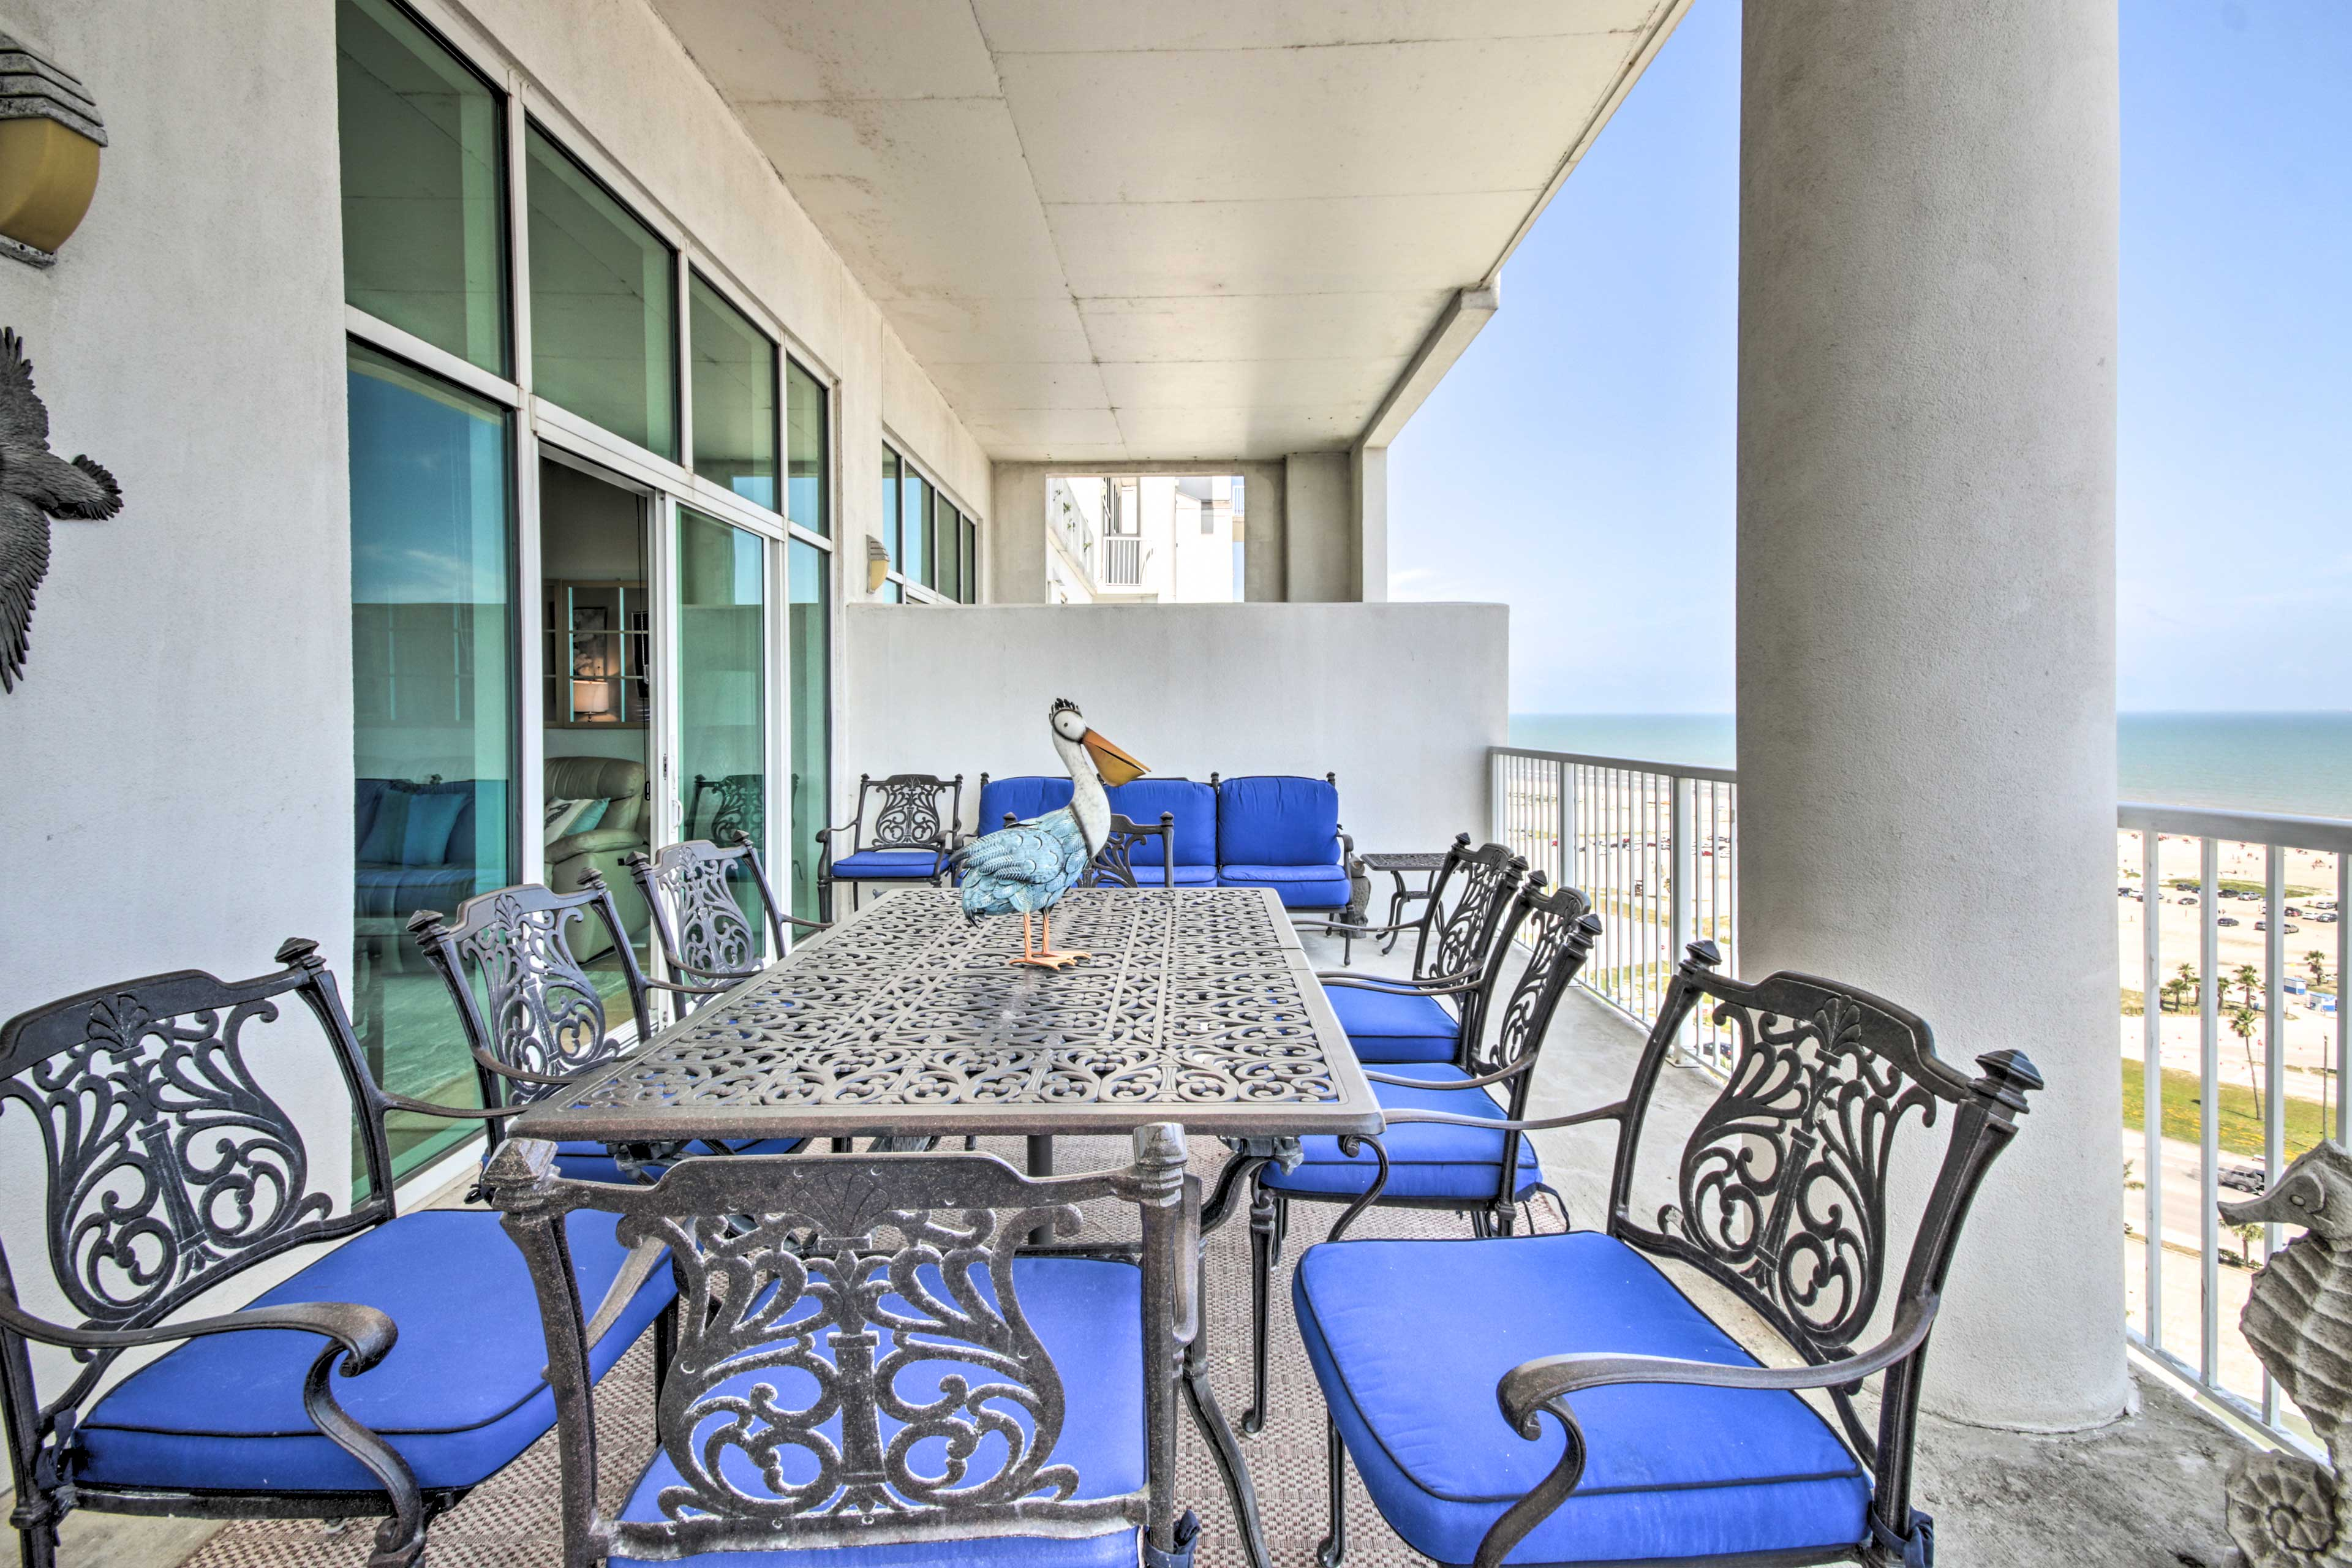 Step onto the spacious private balcony and soak in the ocean views!